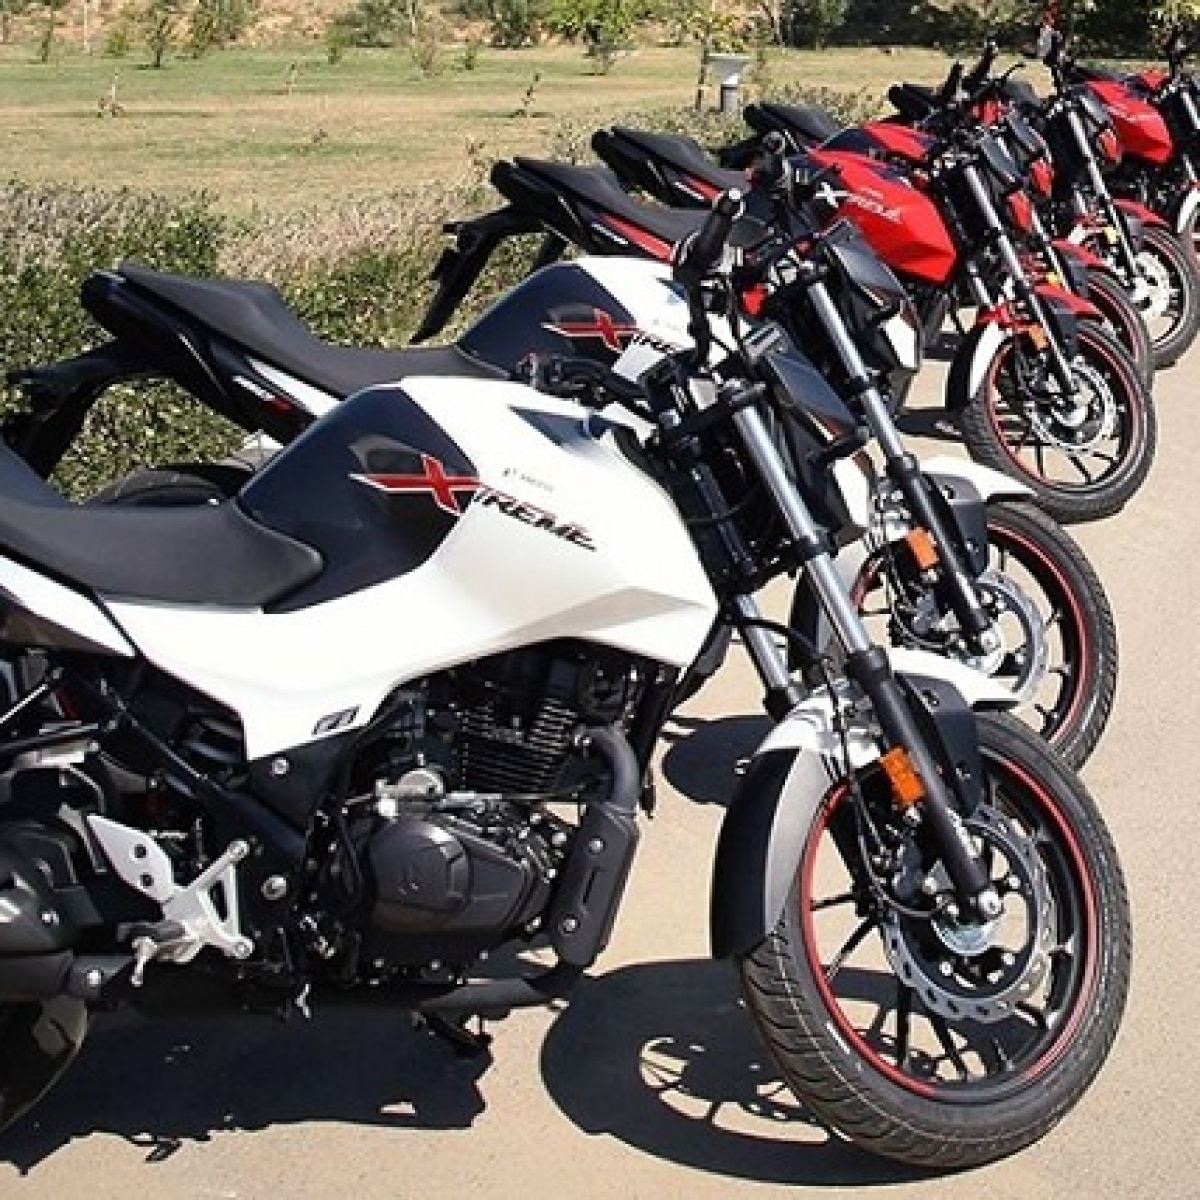 Hero MotoCorp to increase prices by up to Rs 2,500 from April